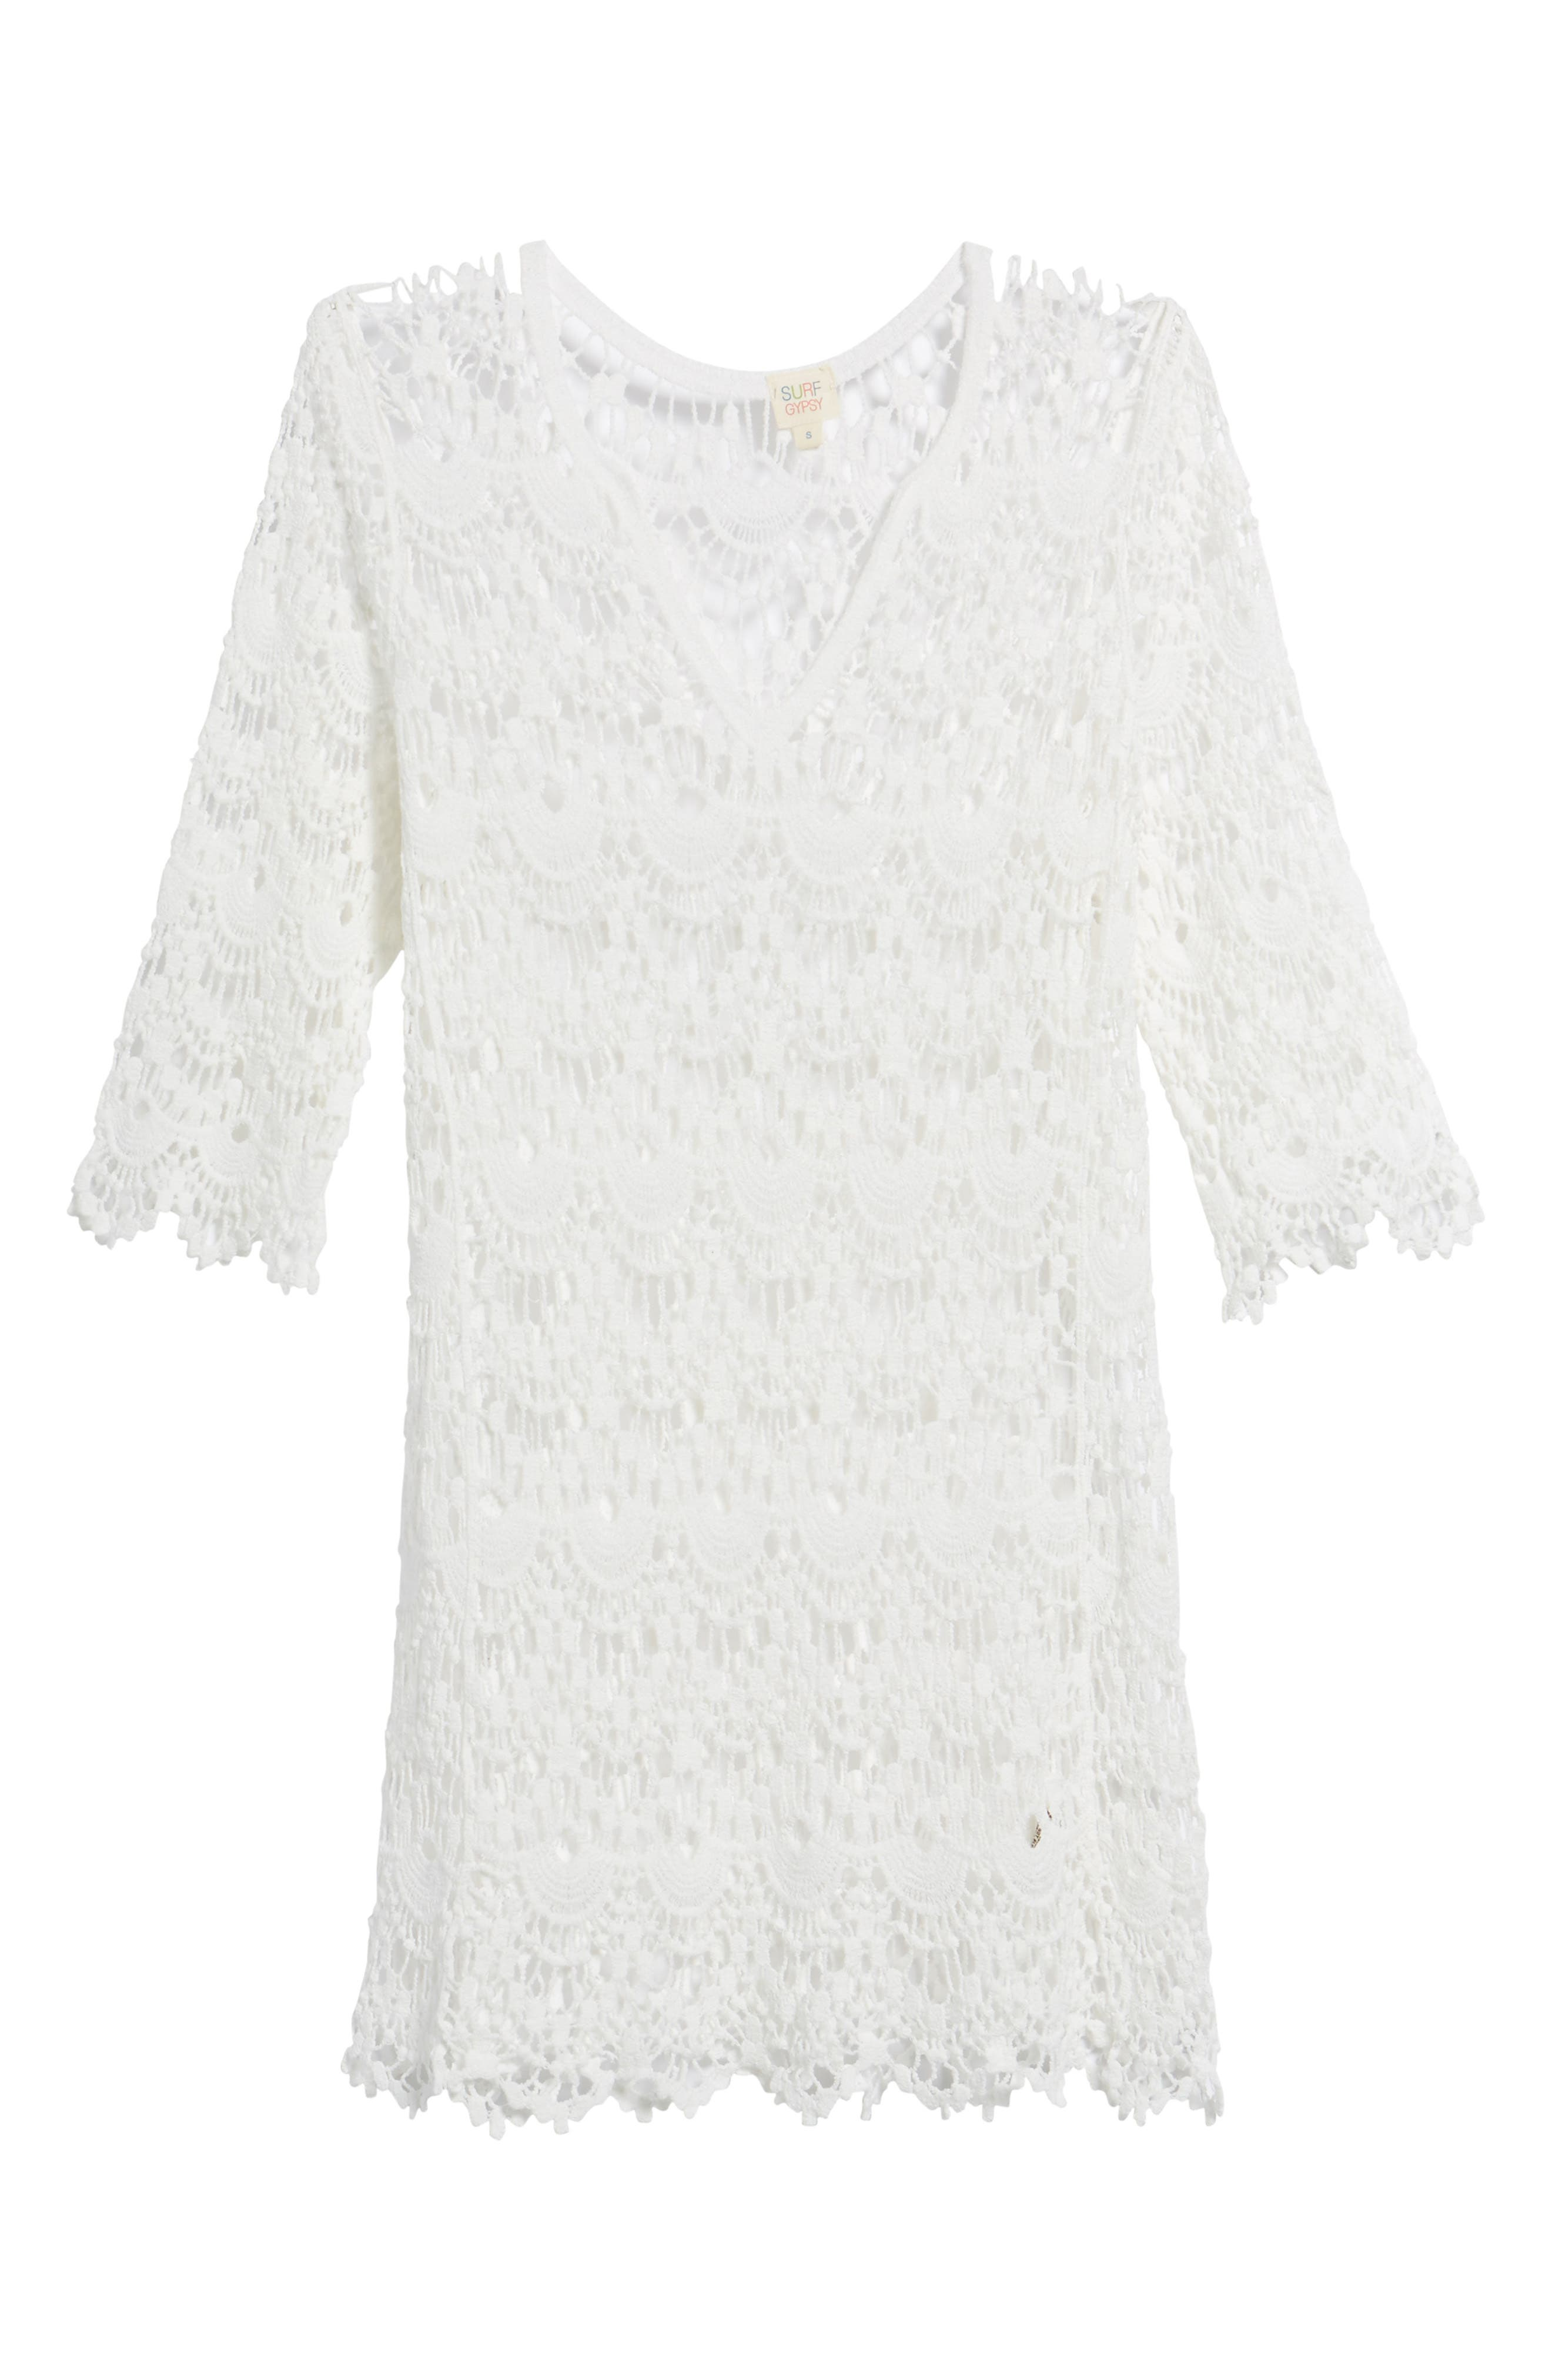 Crochet Cover-Up Tunic,                             Alternate thumbnail 2, color,                             100